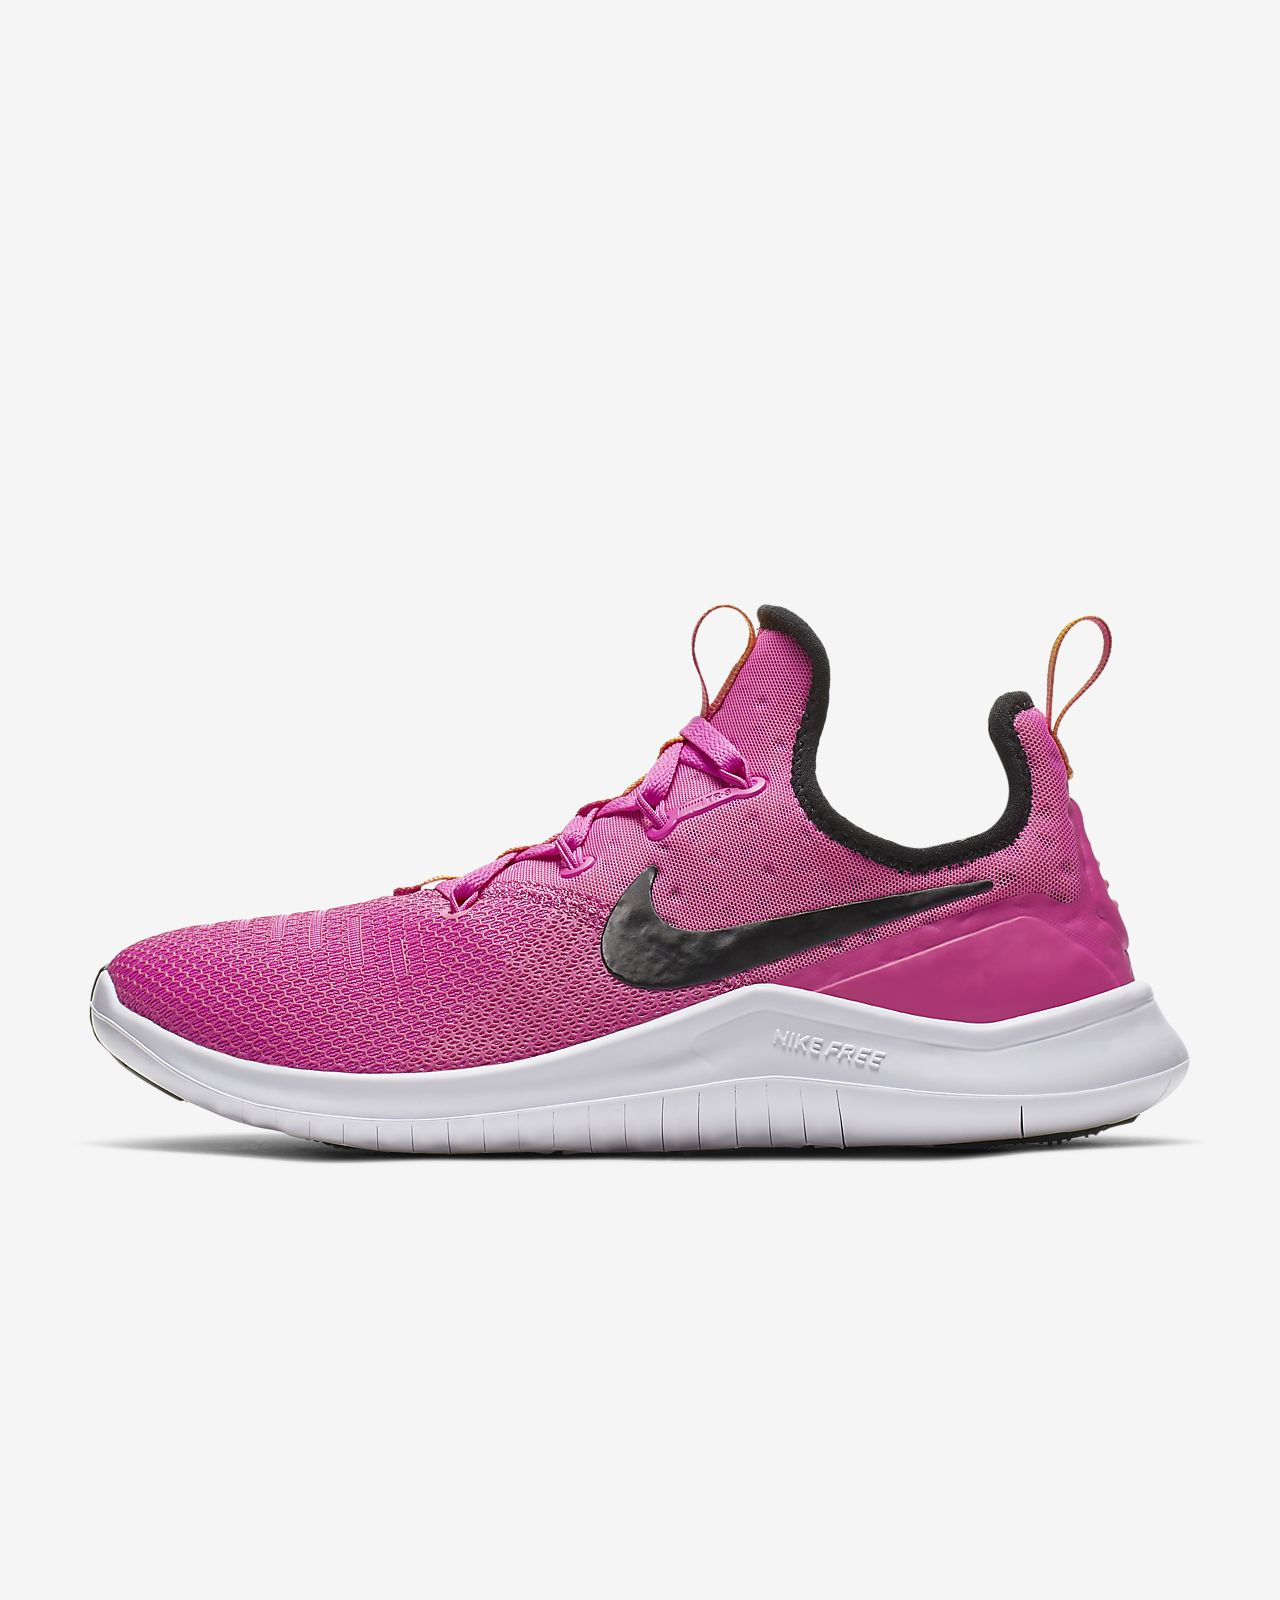 77160d80248c6 Nike Free TR8 Women s Gym HIIT Cross Training Shoe. Nike.com